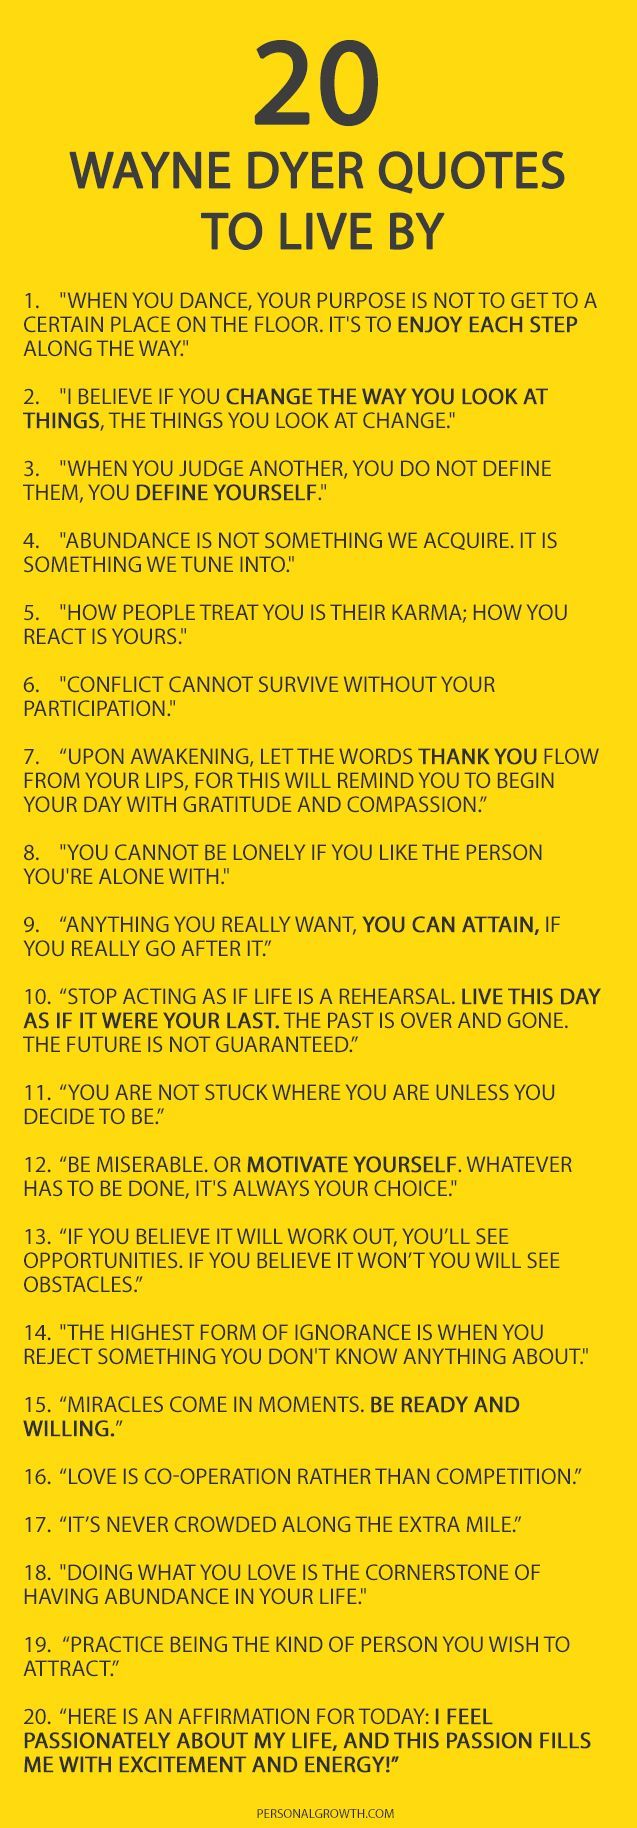 20 Things Wayne Dyer Wanted You To Know- One of my favorite life guides was Dr Wayne W. Dyer.  May he rest in peace.: